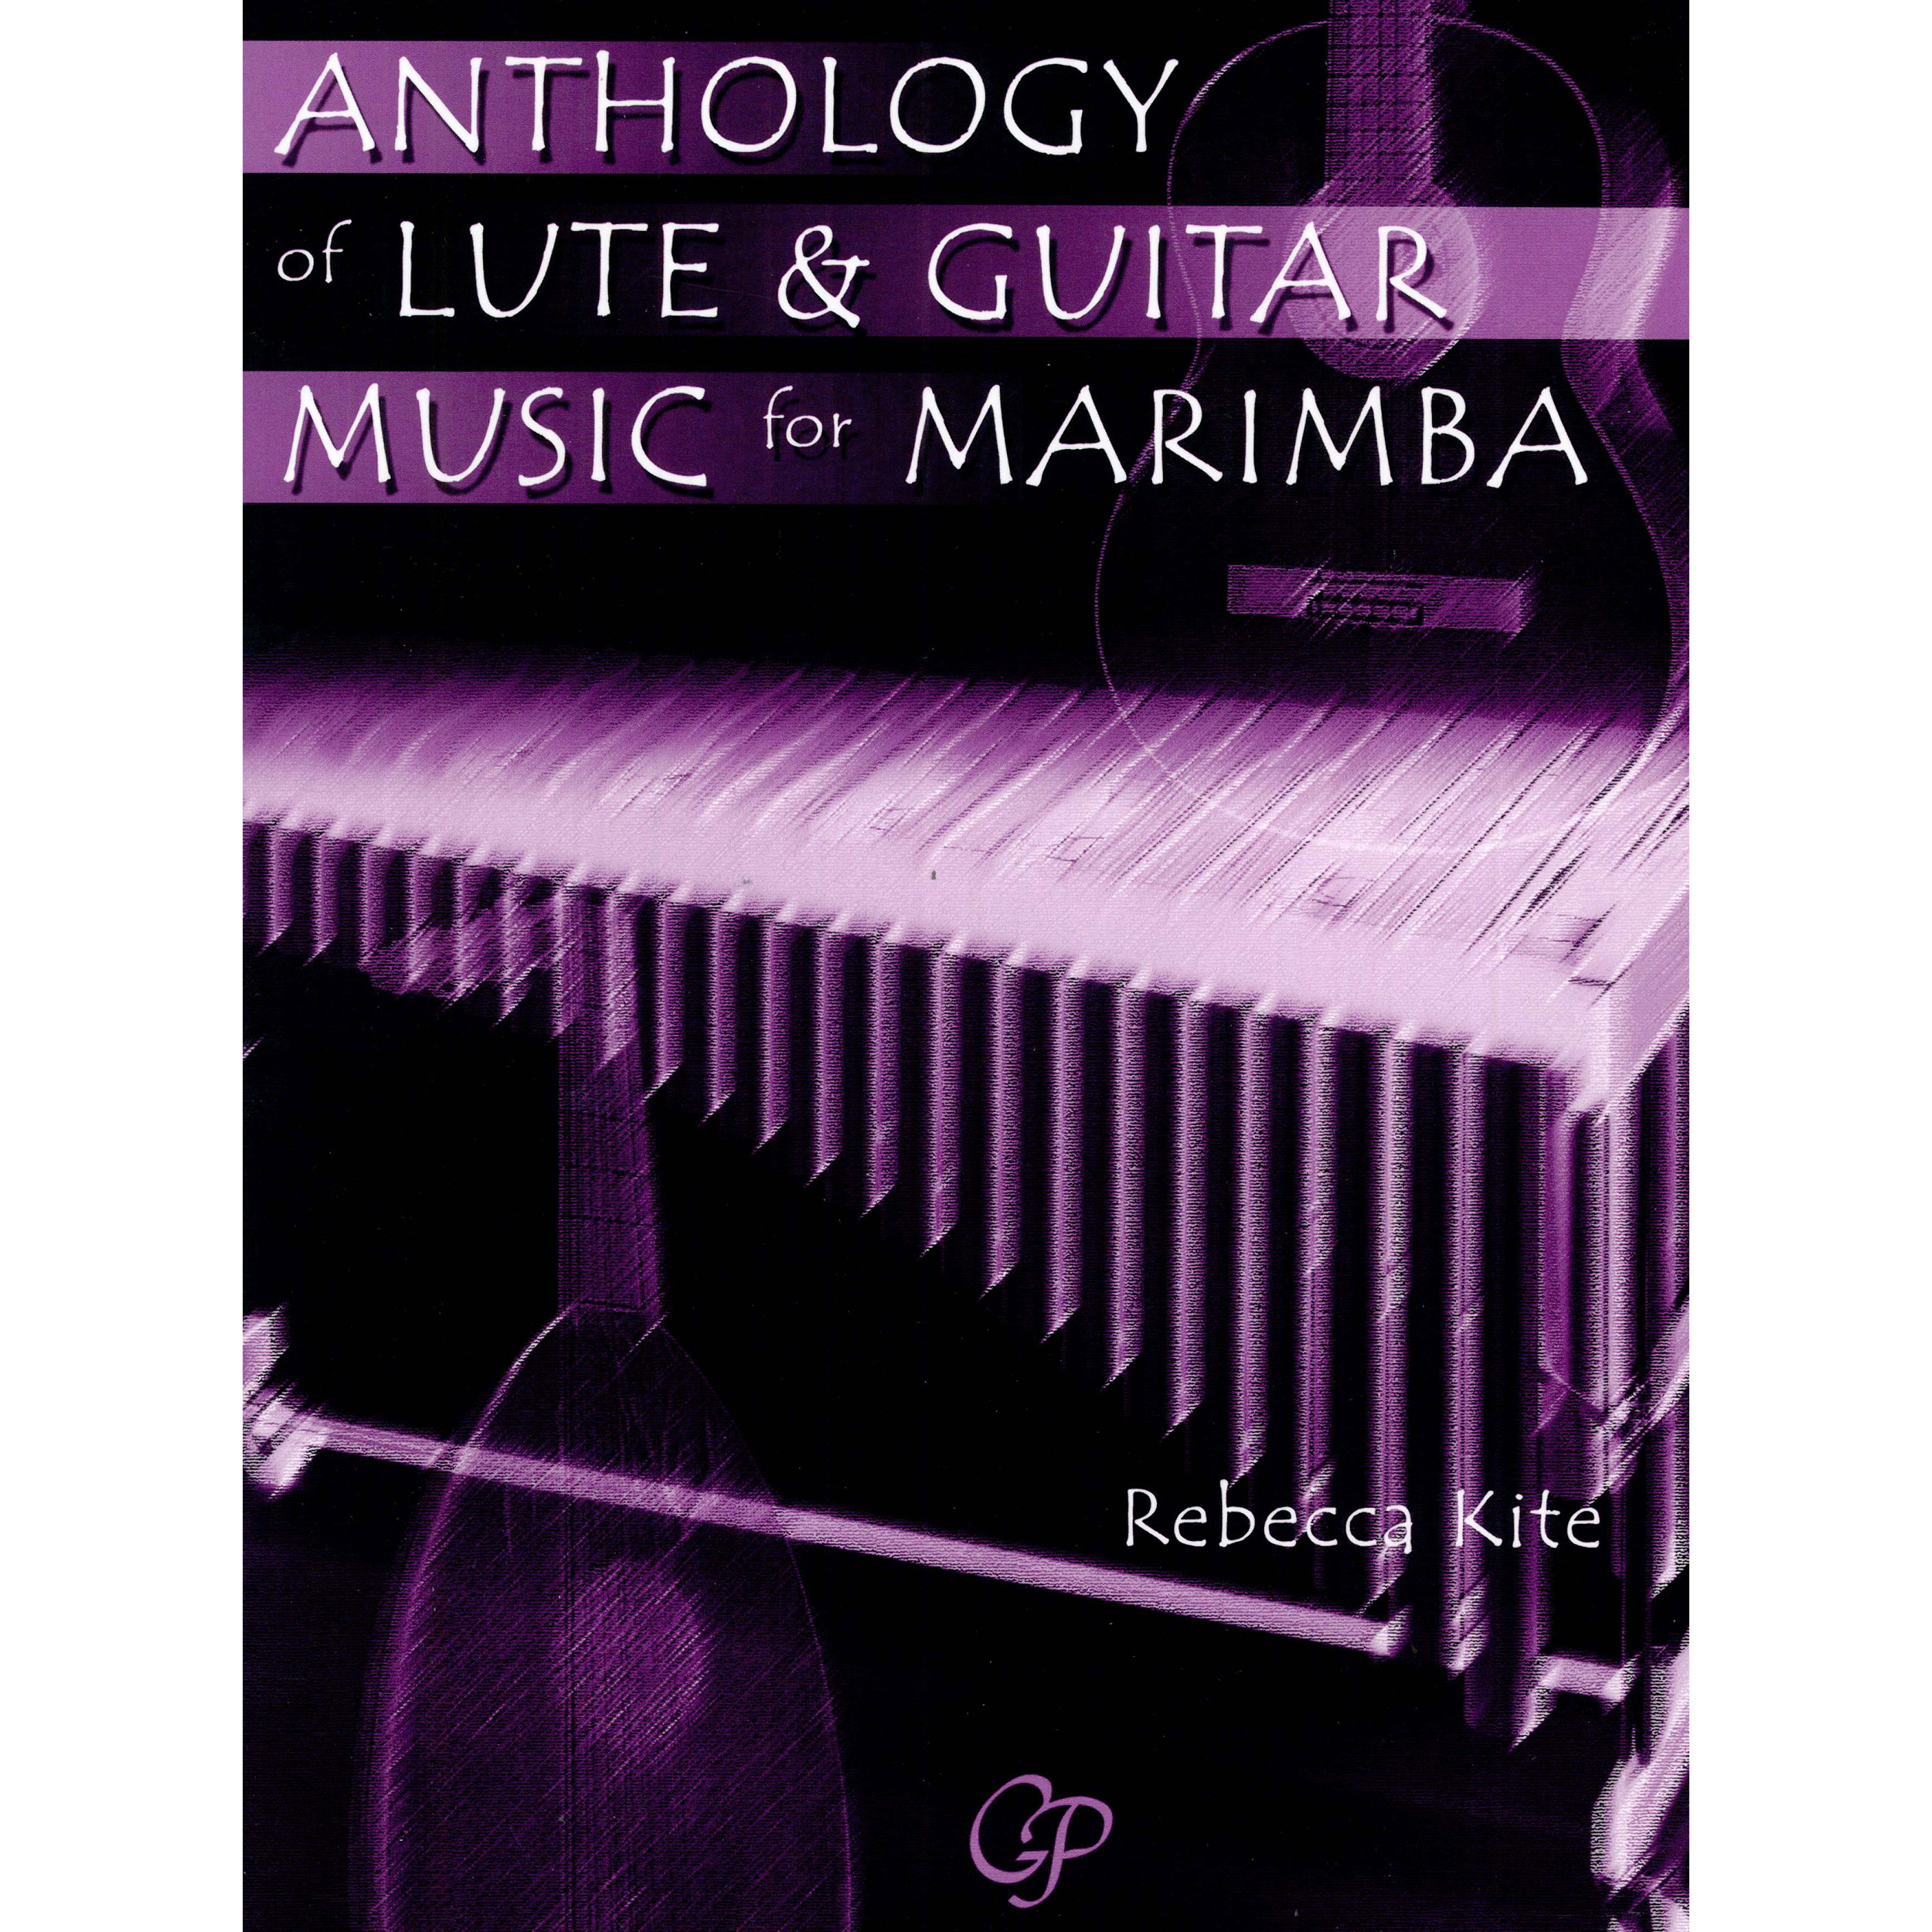 Anthology of Lute and Guitar for Marimba by Rebecca Kite